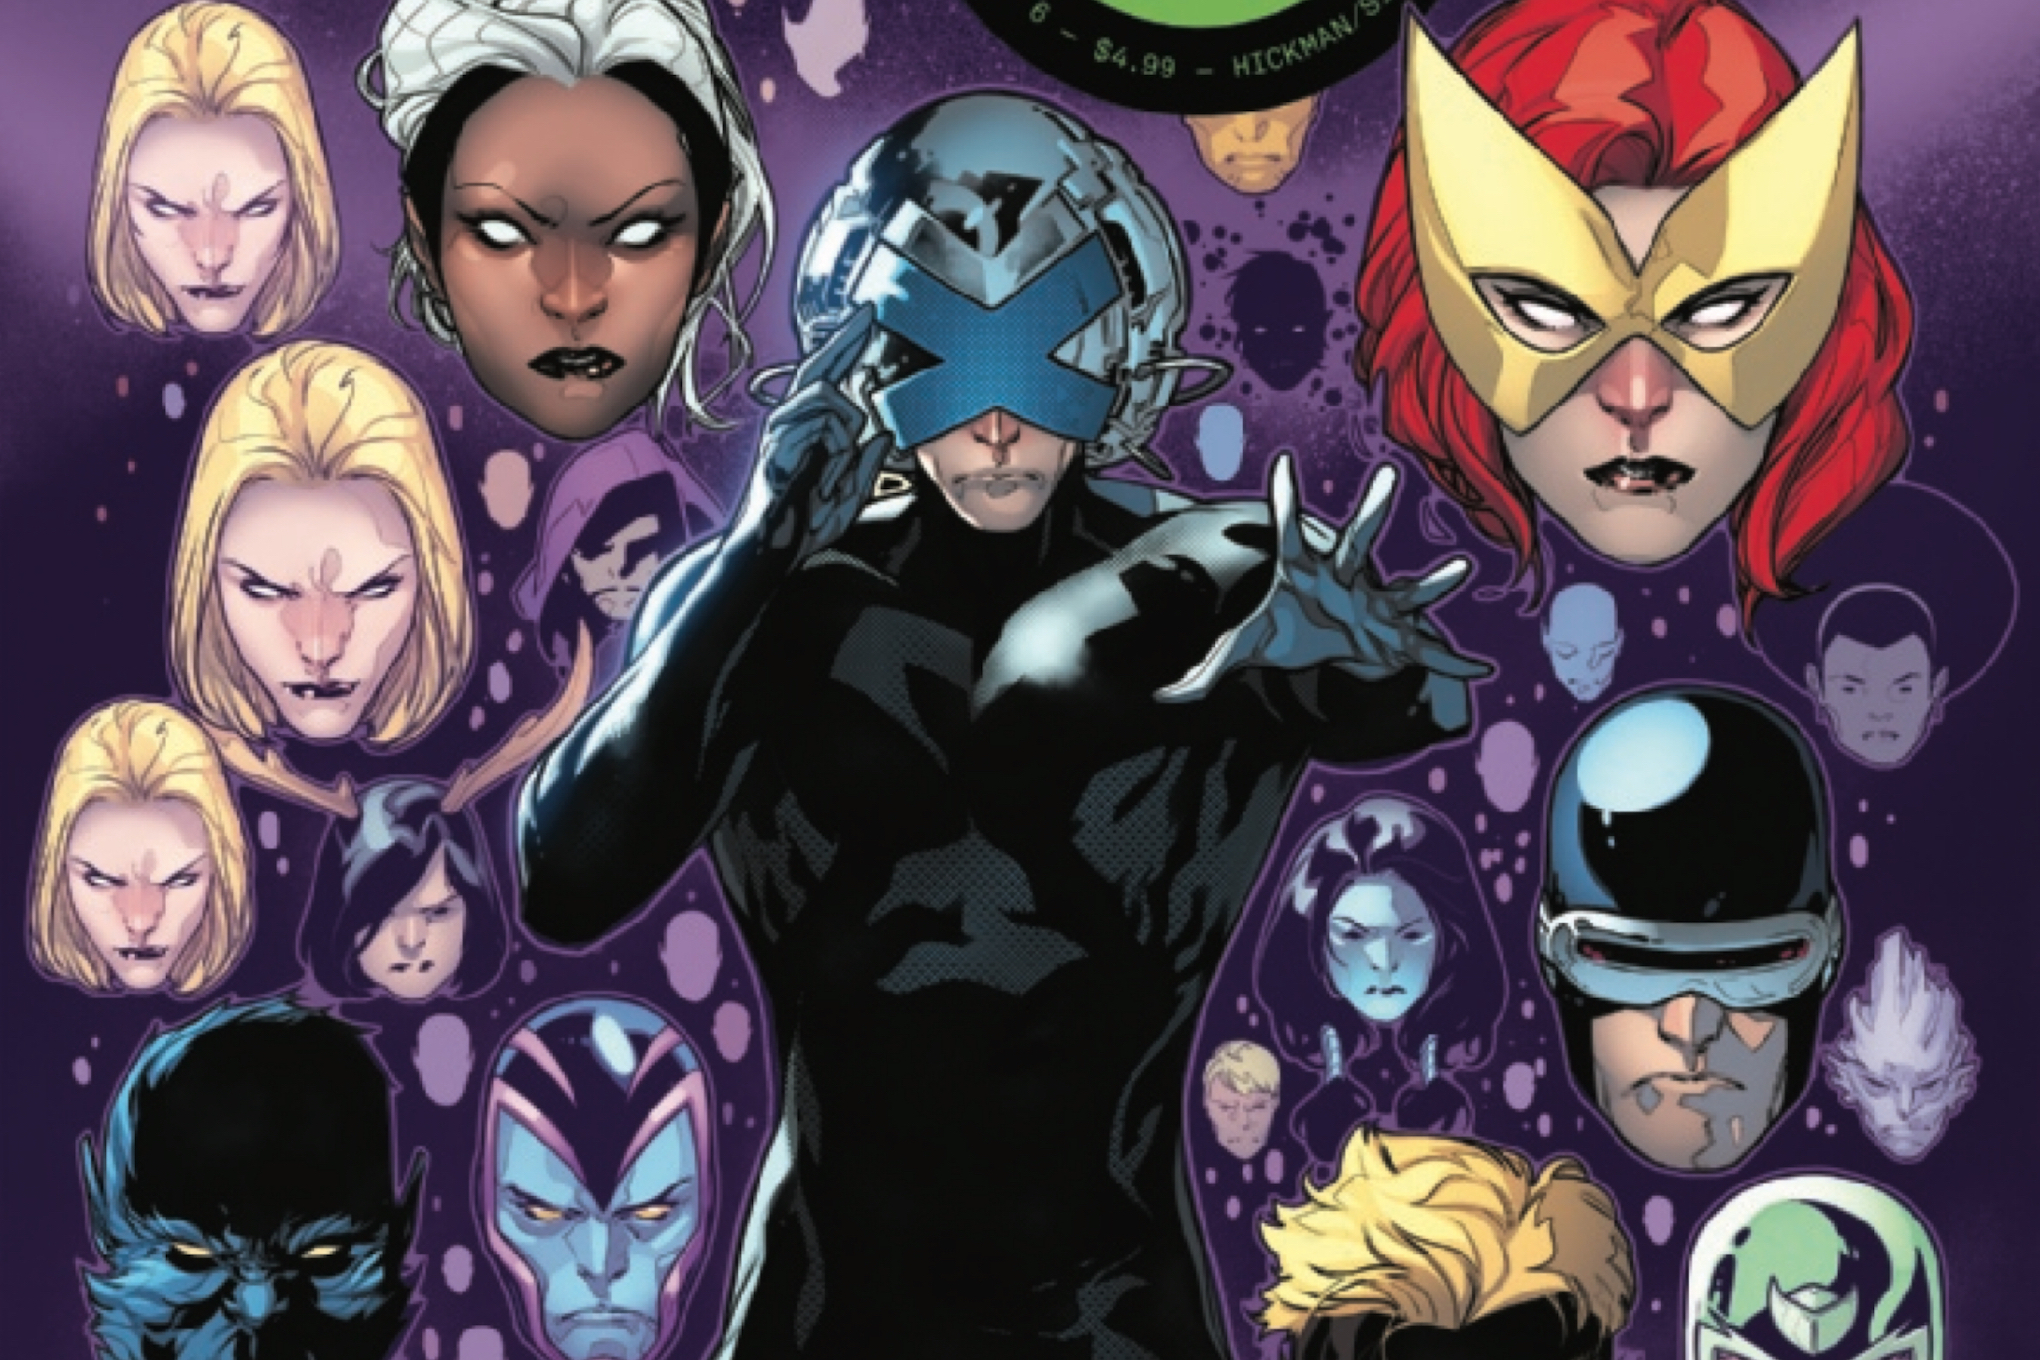 Powers of X #4 finally reveals the series' most anticipated villain